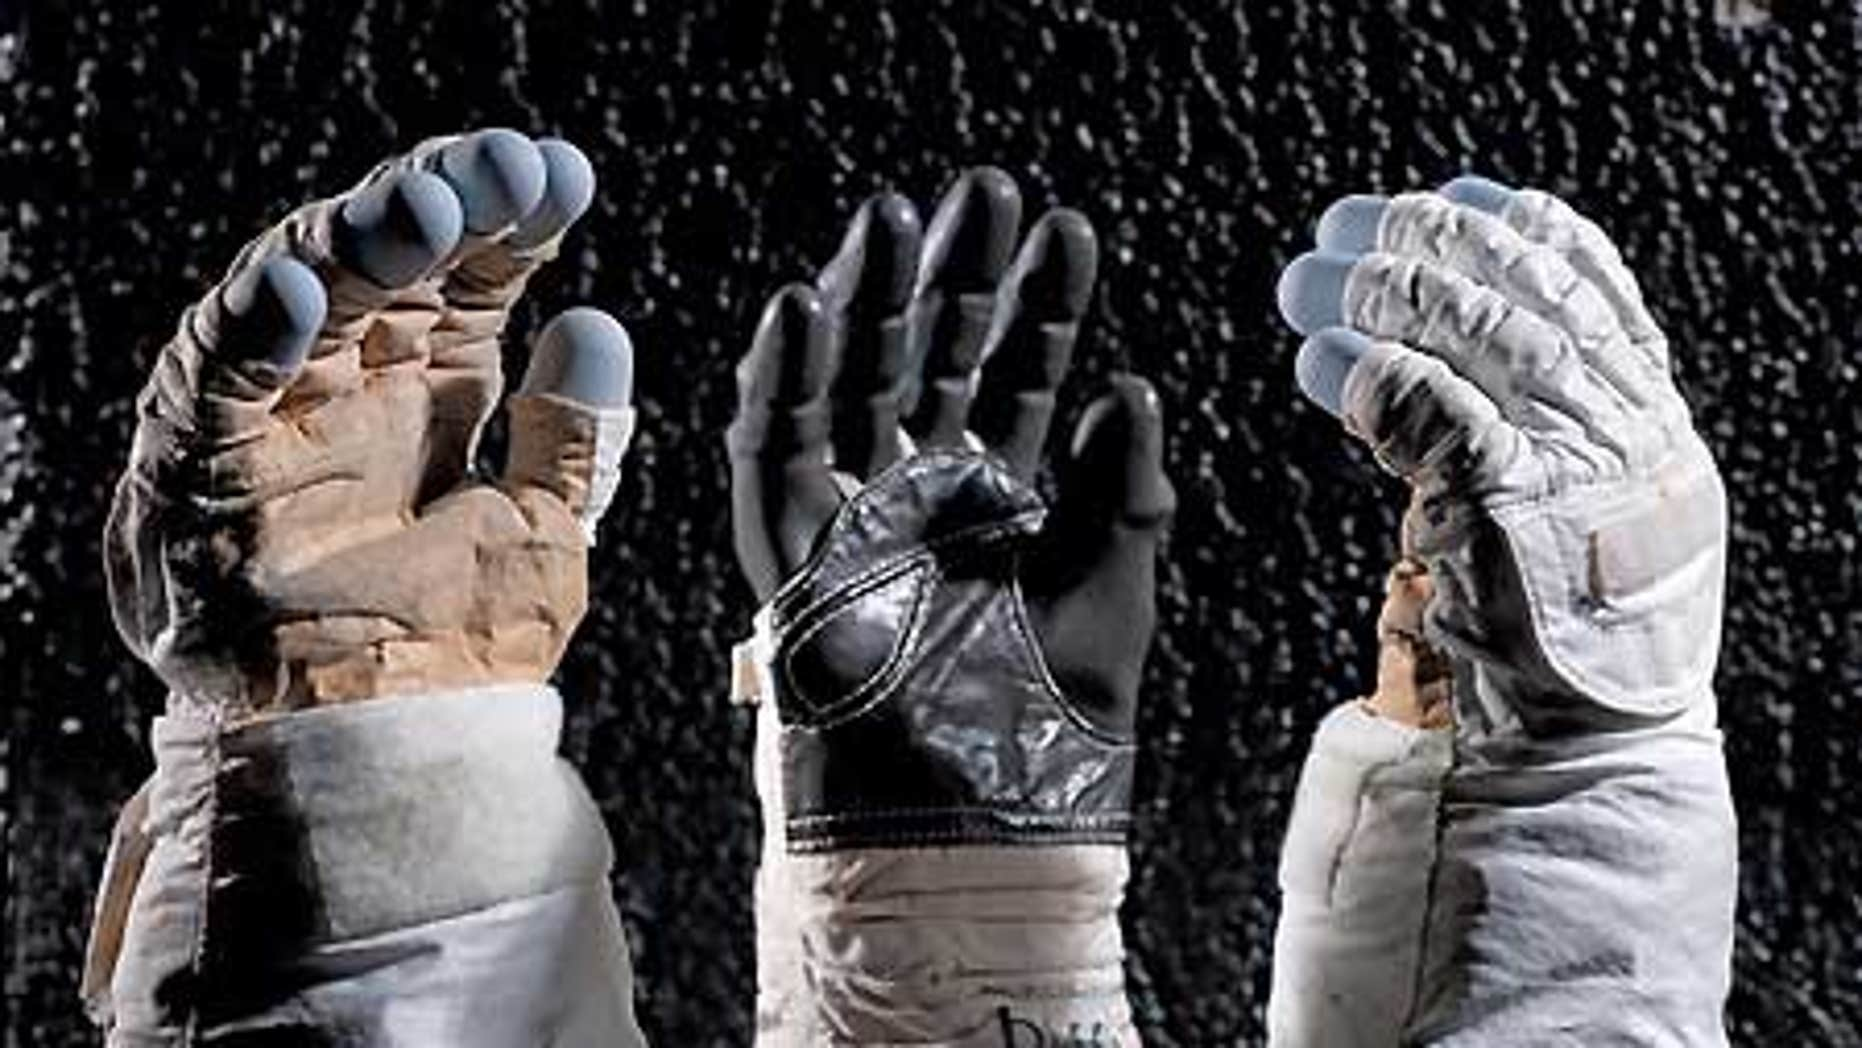 Spacewalk gloves and a Sokol pressure-suit glove are on display in the 'Moving Beyond Earth' exhibition